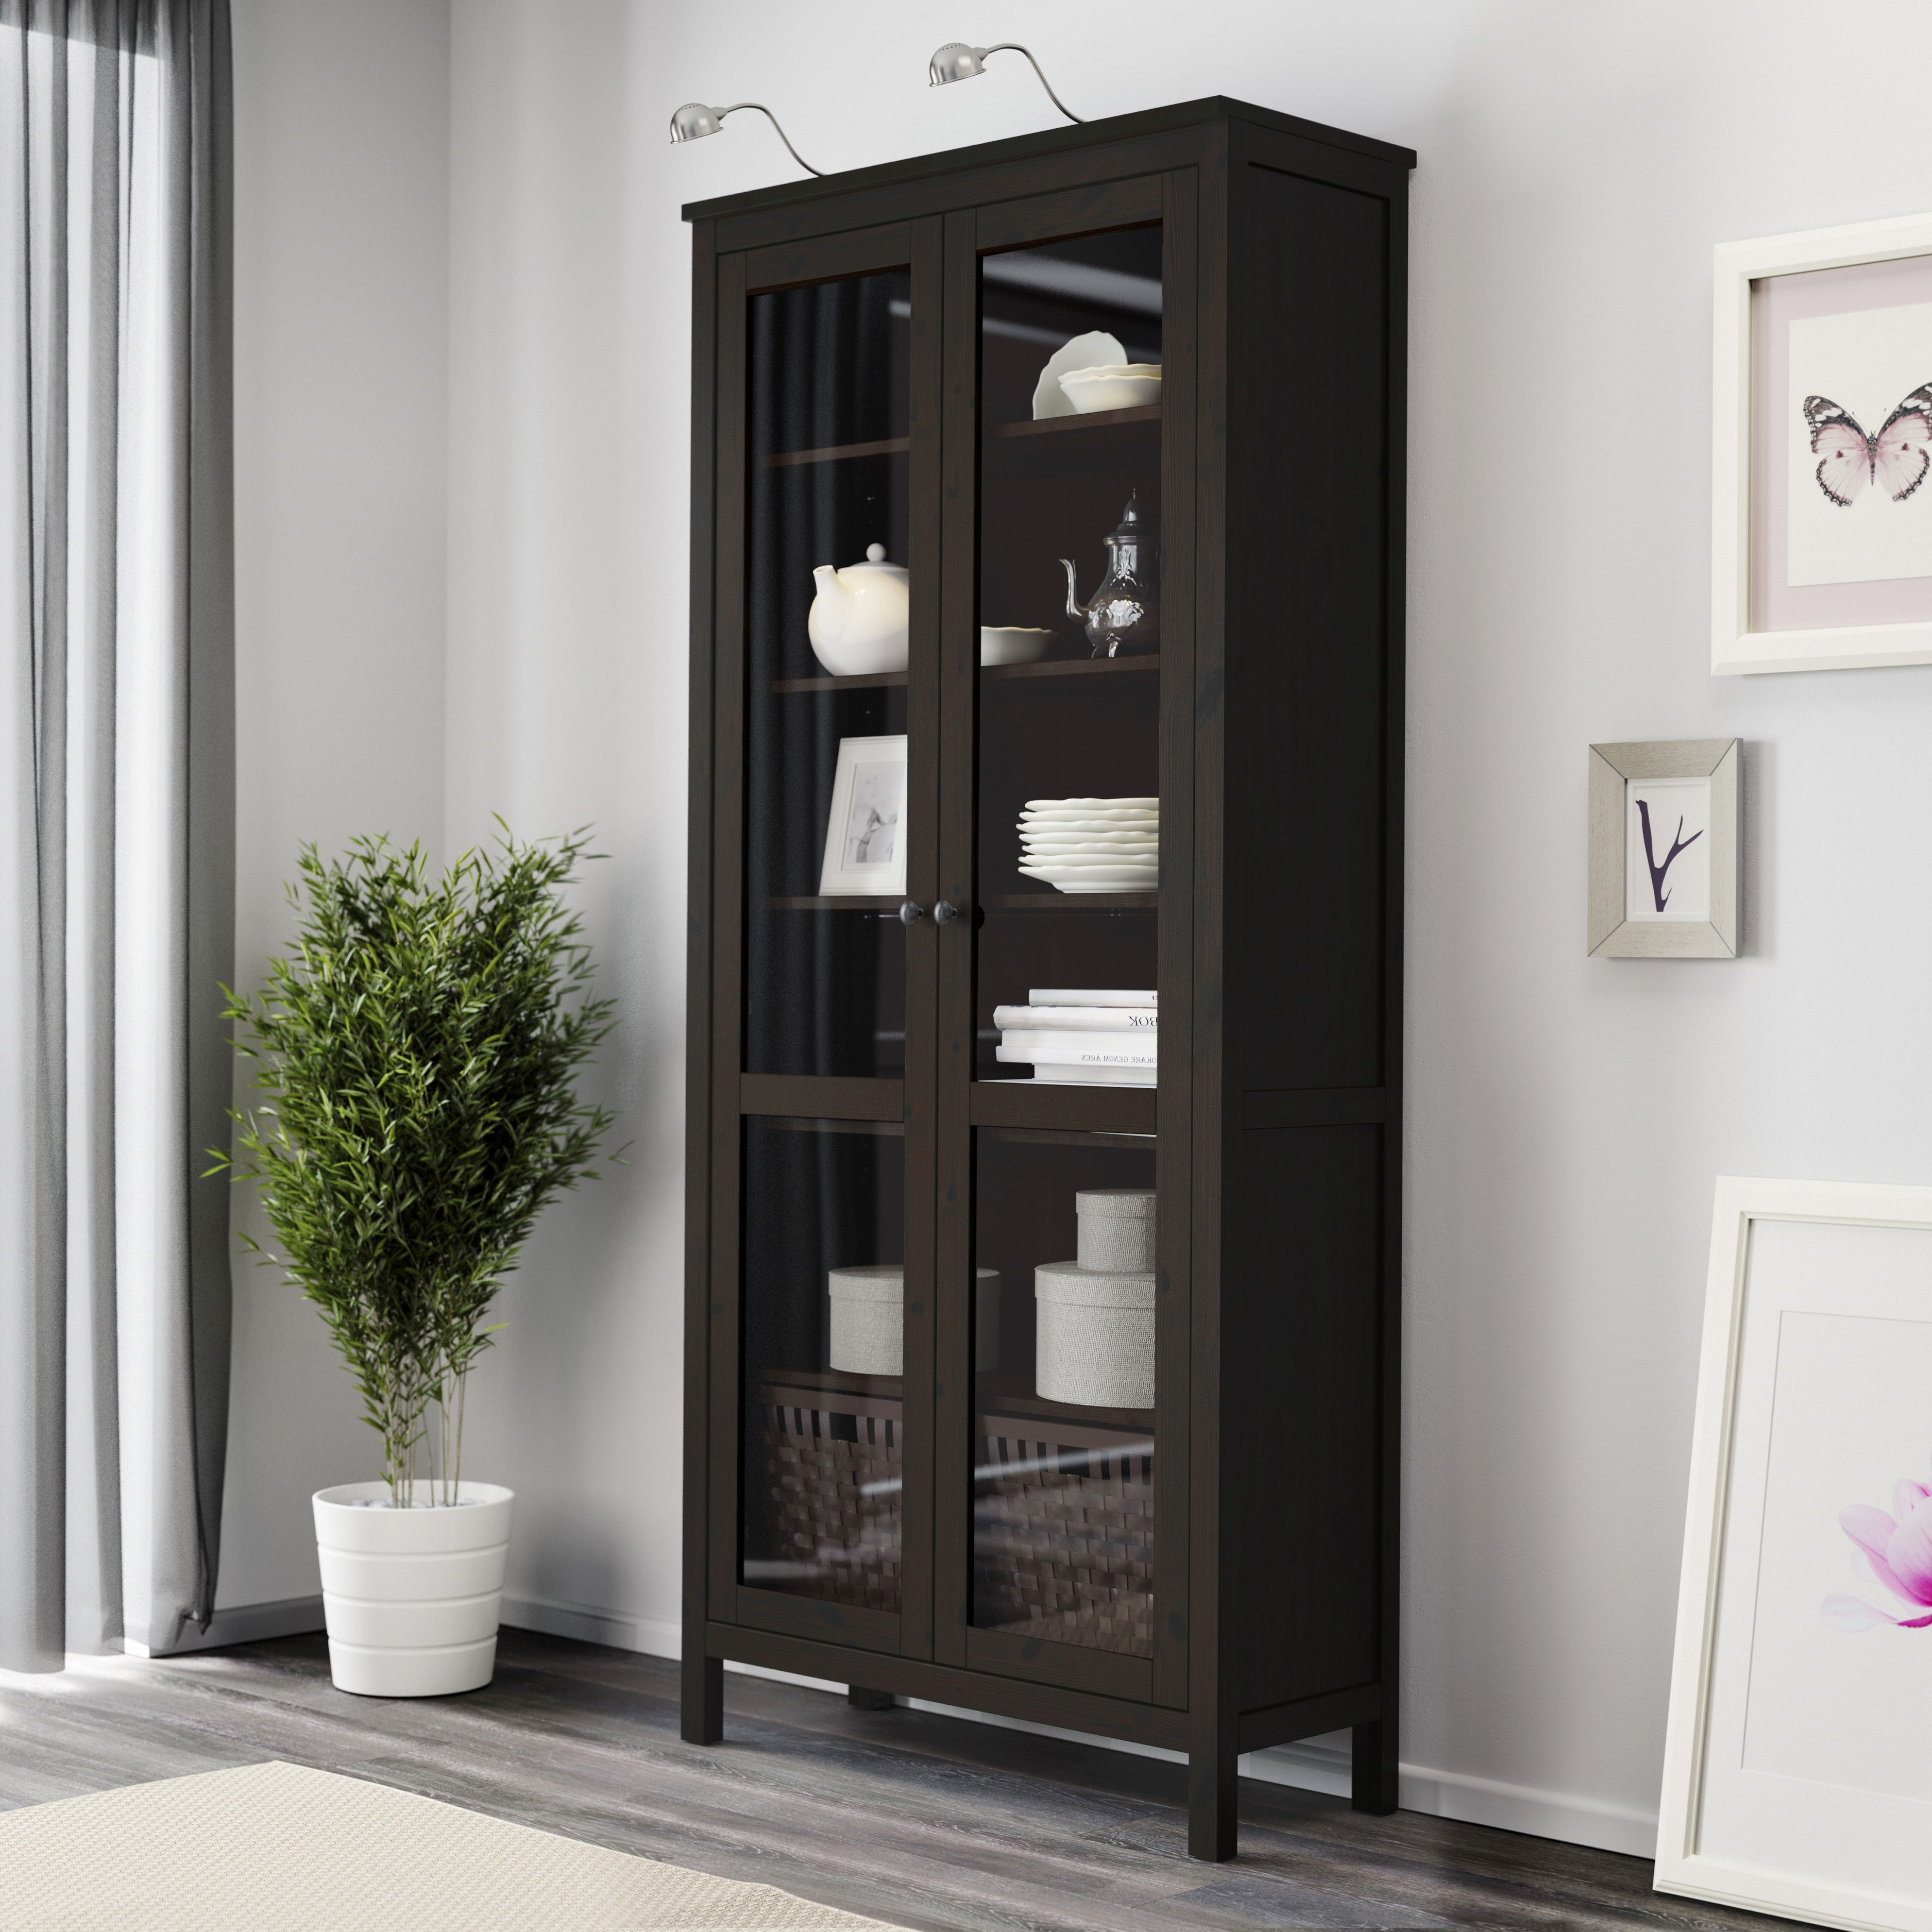 hemnes vitrinekast ikea ikeanl zwartbruin. Black Bedroom Furniture Sets. Home Design Ideas